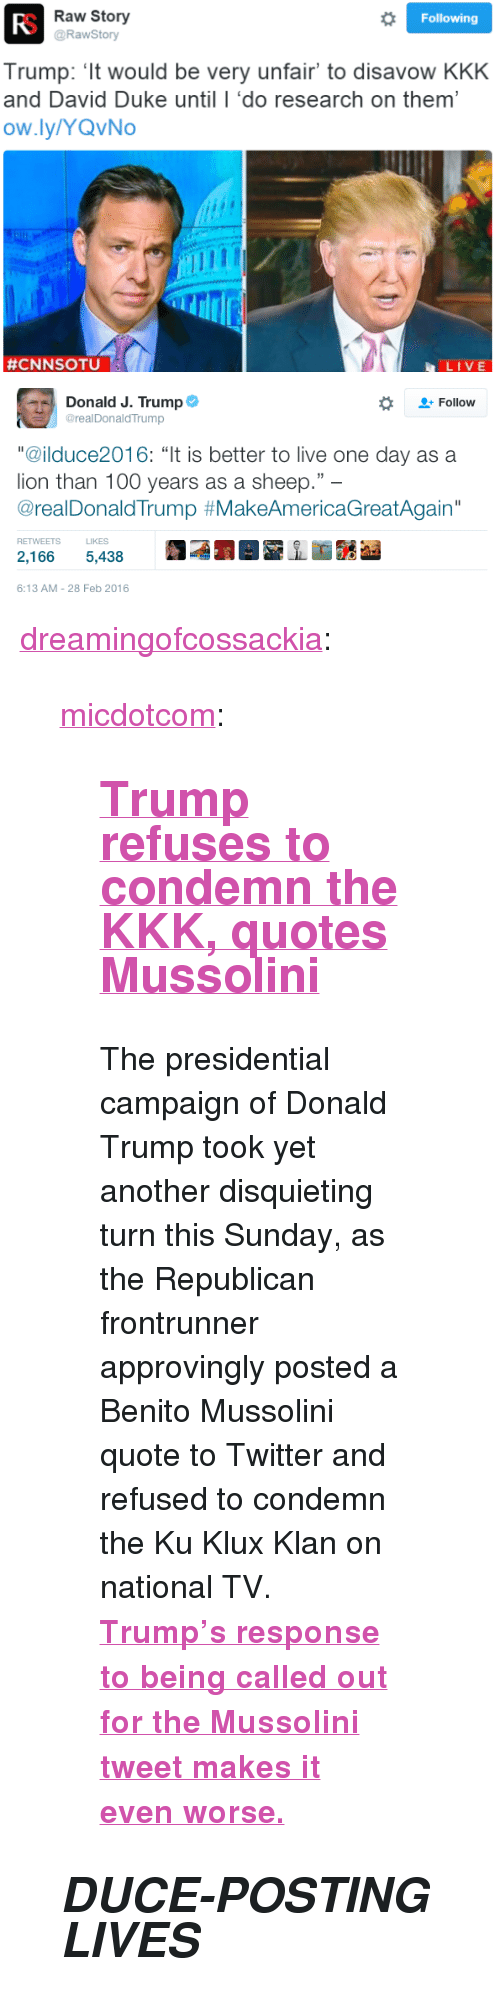 """Anaconda, Donald Trump, and Kkk: Raw Story  @RawStory  Following  Trump: 't would be very unfair to disavow KKK  and David Duke until I 'do research on them'  ow.ly/YQvNo  #CNNSOTU  LIVE   Donald J. Trump  2- Follow  @realDonaldTrump  """"@ilduce2016: """"It is better to live one day as a  lion than 100 years as a sheep.""""  @realDonaldTrump #MakeAmericaGreatAgain""""  RETWEETS LIKES  2,1665,438  6:13 AM-28 Feb 2016 <p><a class=""""tumblr_blog"""" href=""""http://dreamingofcossackia.tumblr.com/post/140159100619"""">dreamingofcossackia</a>:</p> <blockquote> <p><a class=""""tumblr_blog"""" href=""""http://micdotcom.tumblr.com/post/140156220061"""">micdotcom</a>:</p> <blockquote> <h2><b><a href=""""http://mic.com/articles/136447/donald-trump-approvingly-retweets-mussolini-quote-refuses-to-condemn-kkk?utm_source=policymicTBLR&utm_medium=main&utm_campaign=social"""">Trump refuses to condemn the KKK, quotes Mussolini</a></b></h2> <p>The presidential campaign of Donald Trump took yet another disquieting turn this Sunday, as the Republican frontrunner approvingly posted a Benito Mussolini quote to Twitter and refused to condemn the Ku Klux Klan on national TV. <b><a href=""""http://mic.com/articles/136447/donald-trump-approvingly-retweets-mussolini-quote-refuses-to-condemn-kkk?utm_source=policymicTBLR&utm_medium=main&utm_campaign=social"""">Trump's response to being called out for the Mussolini tweet makes it even worse.</a></b></p> </blockquote> <h2><b><i>DUCE-POSTING LIVES</i></b></h2> </blockquote>"""